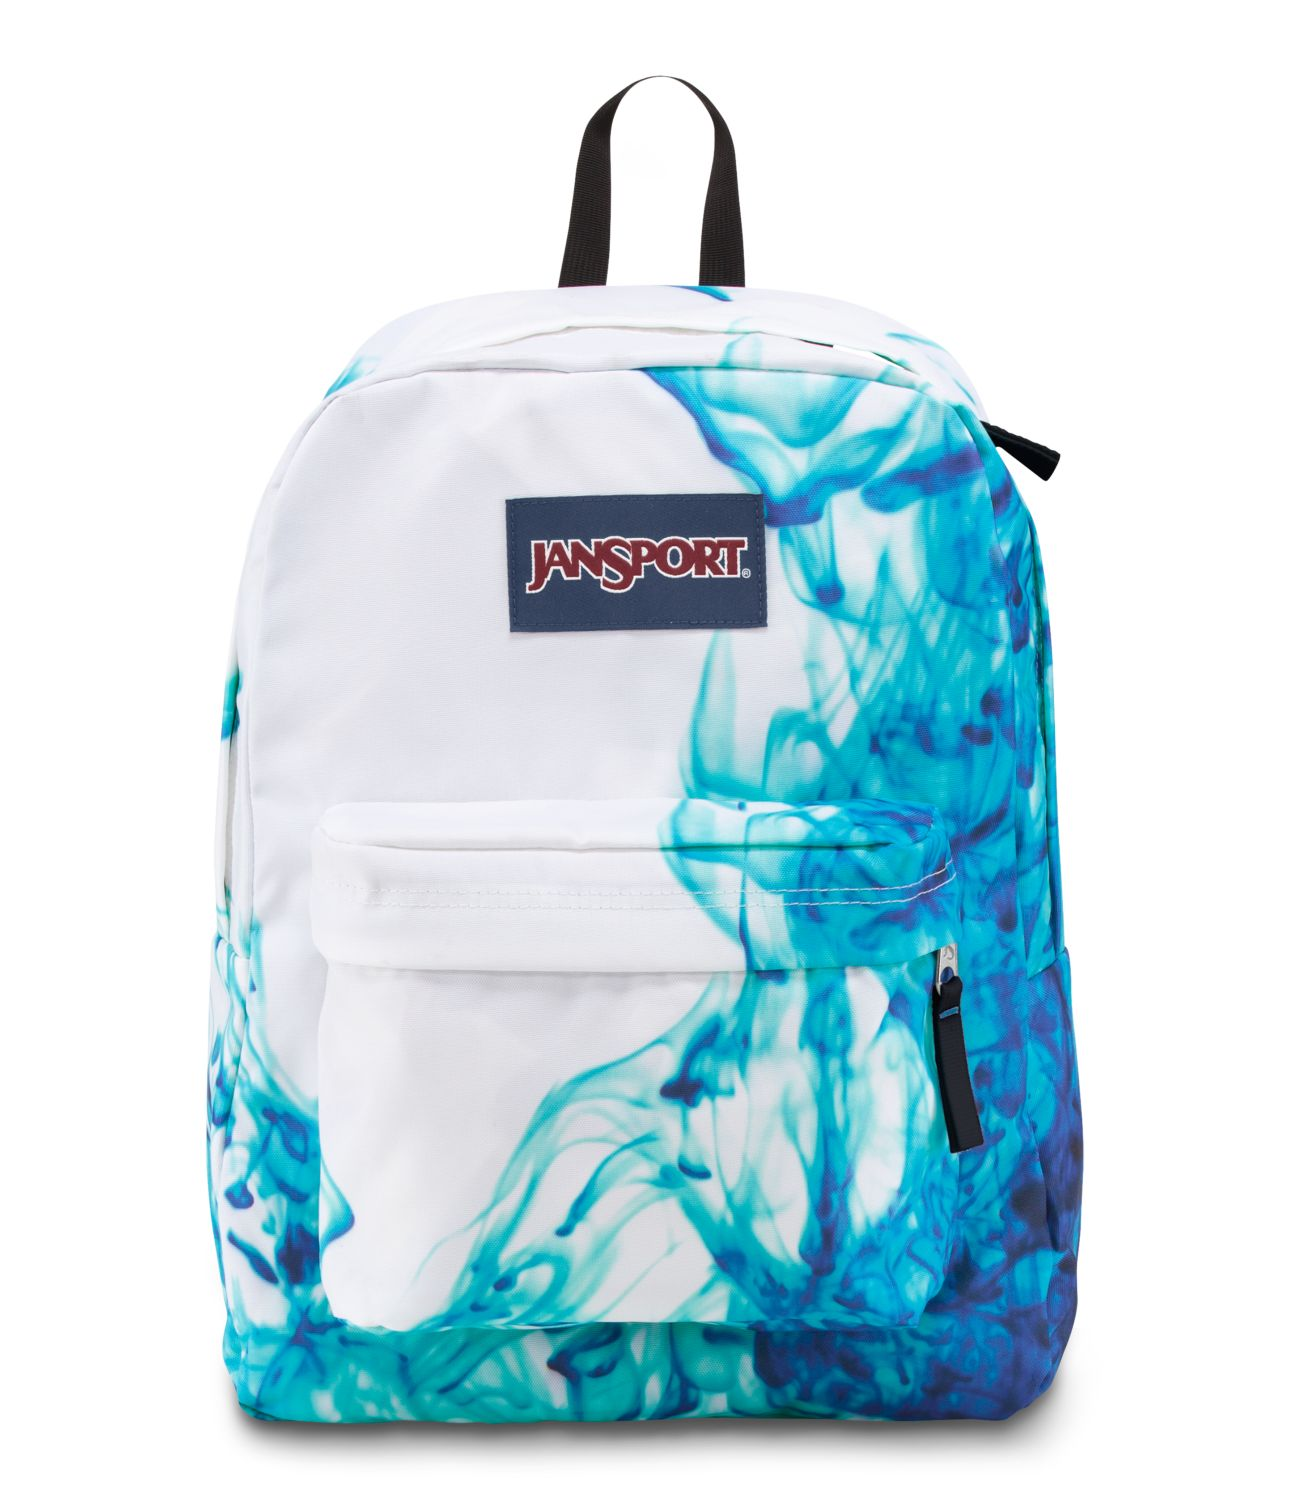 Jansport Backpacks For School MN7LndQY